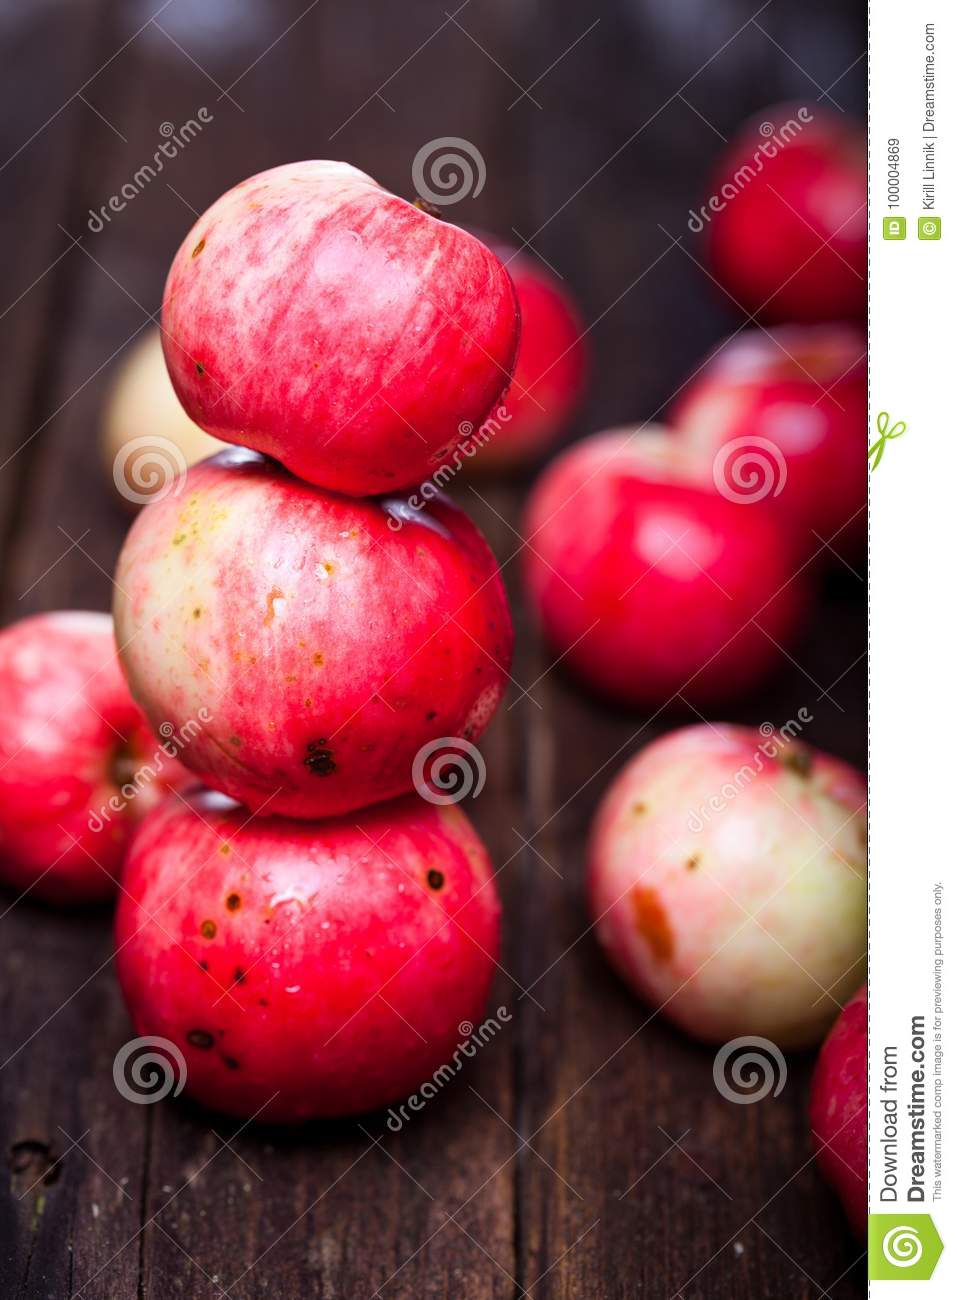 Download Red ripe apples stock image. Image of health, retro - 100004869